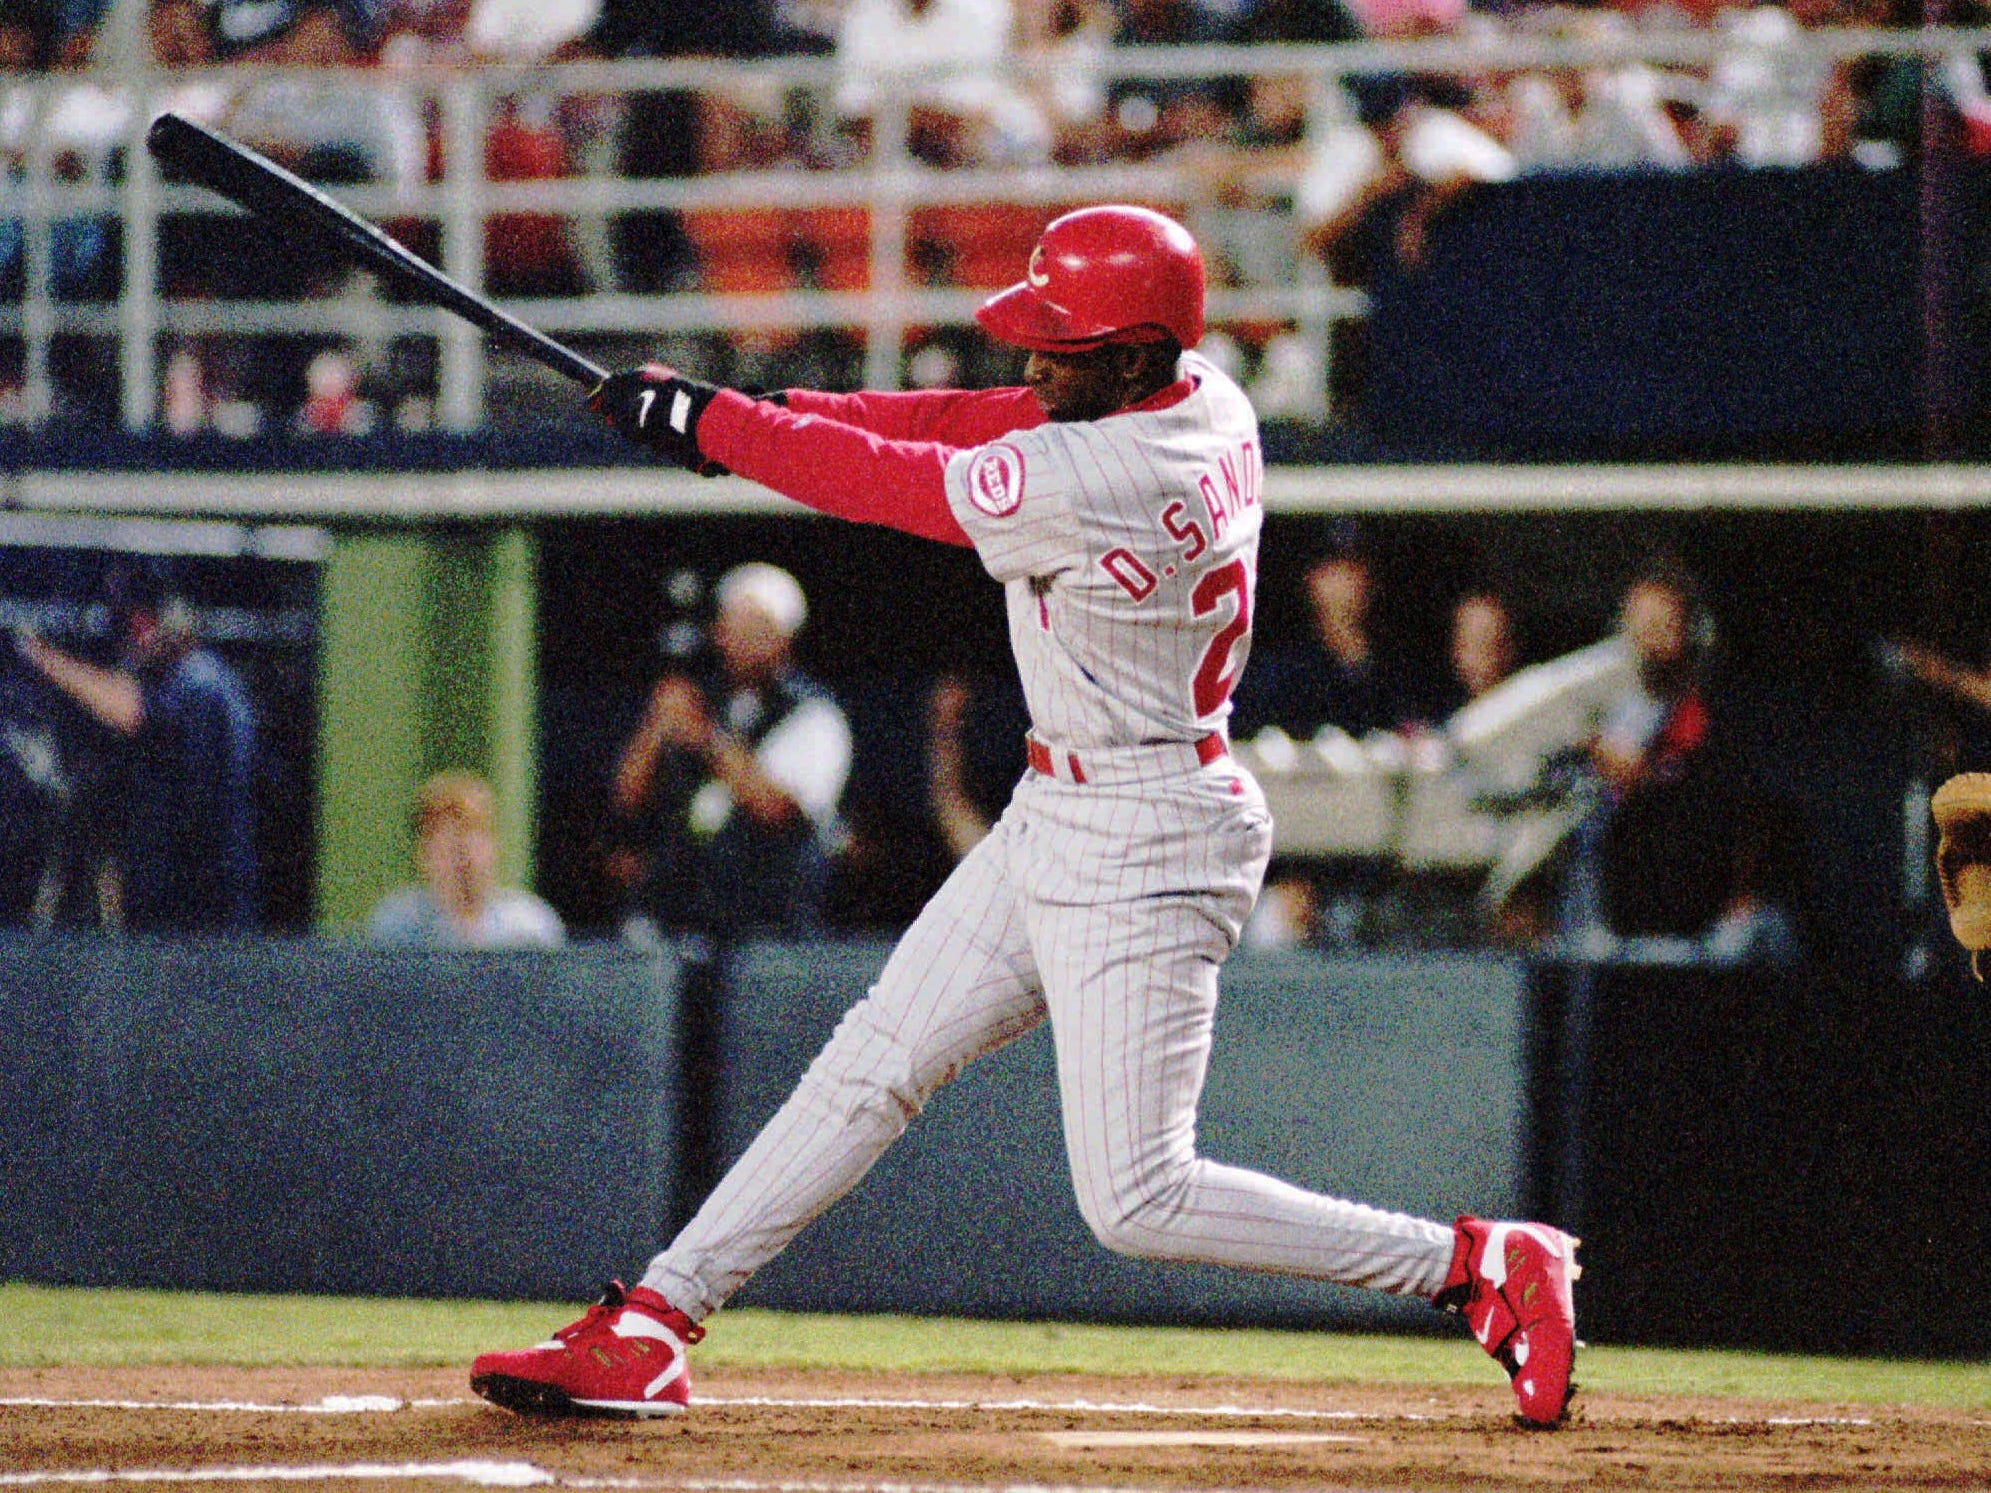 Cincinnati Reds' Deion Sanders takes a rip at the first pitch of the game against the San Diego Padres on July 17, 1995, in San Diego. Sanders is going to be a full-time football player this year, but said Tuesday, Feb. 20, 1996 he didn't rule outplaying baseball again.  ``I made this decision for the love of football, my family and for the city of Dallas,'' he said. ``Now I can find out just how good a football player I can be playing in two positions.''  (AP Photo/Mike Poche, file)